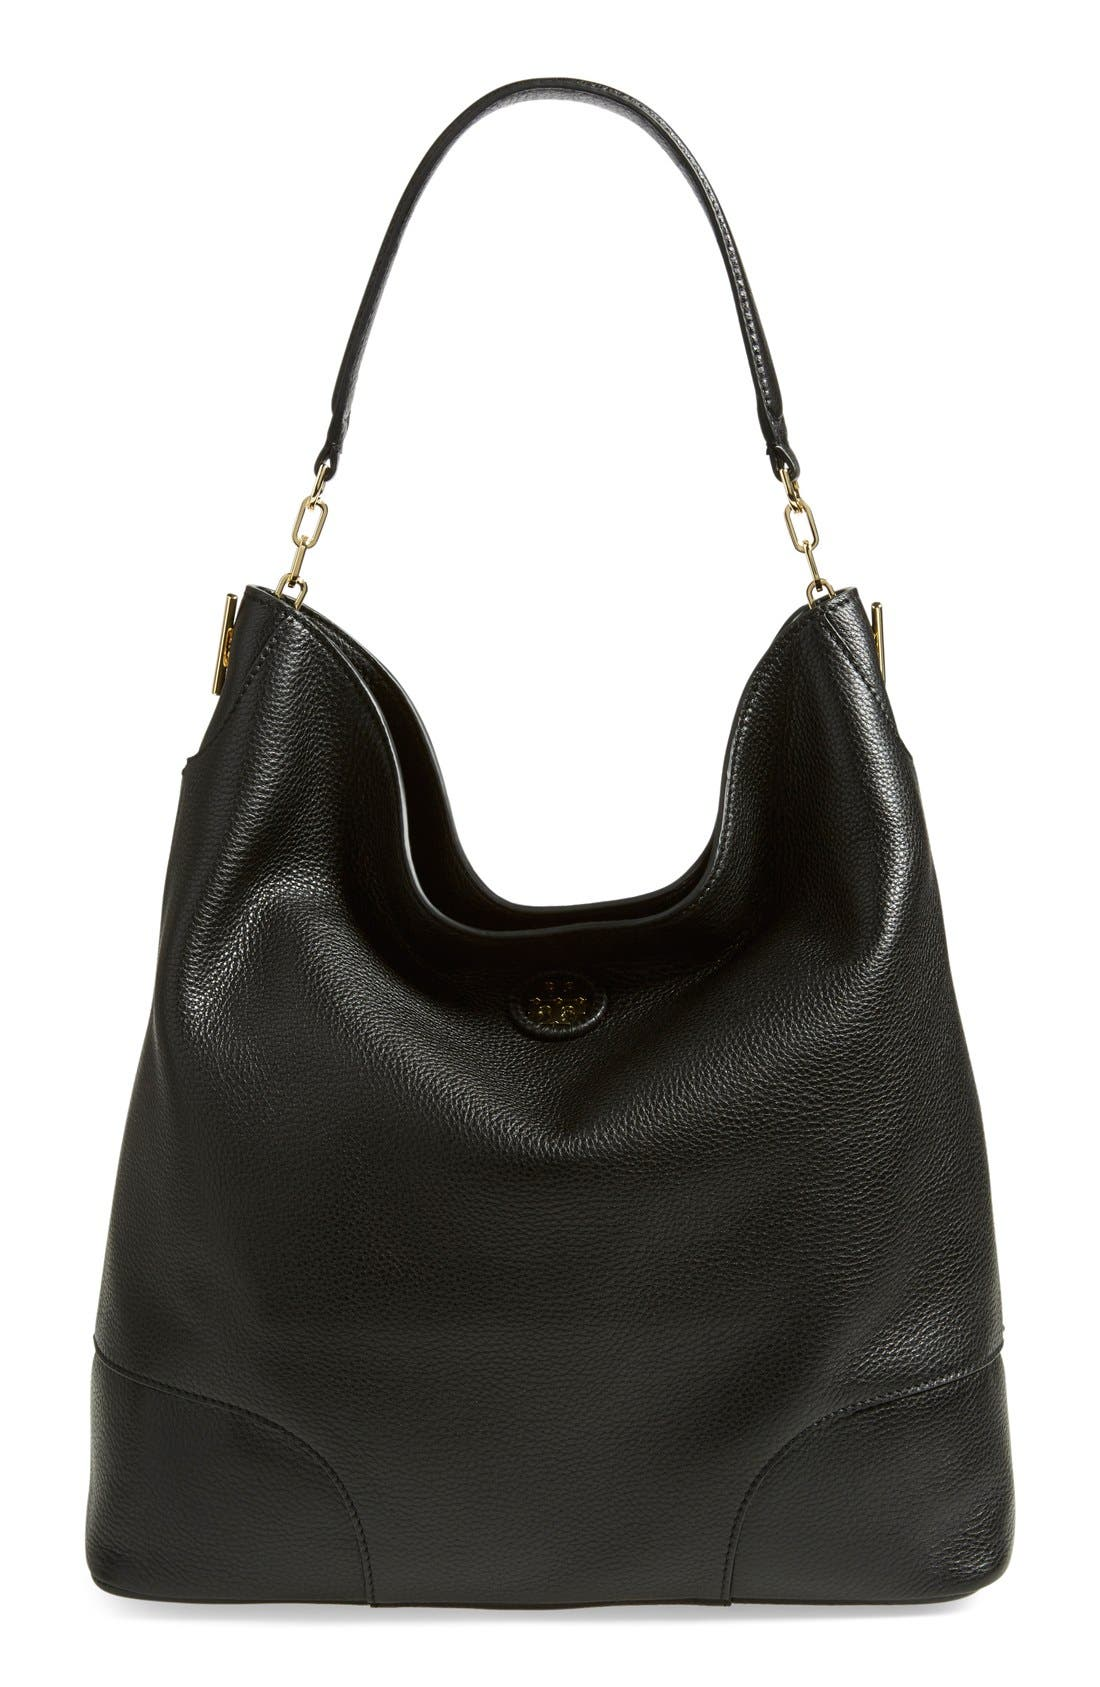 TORY BURCH Leather Hobo, Main, color, 001